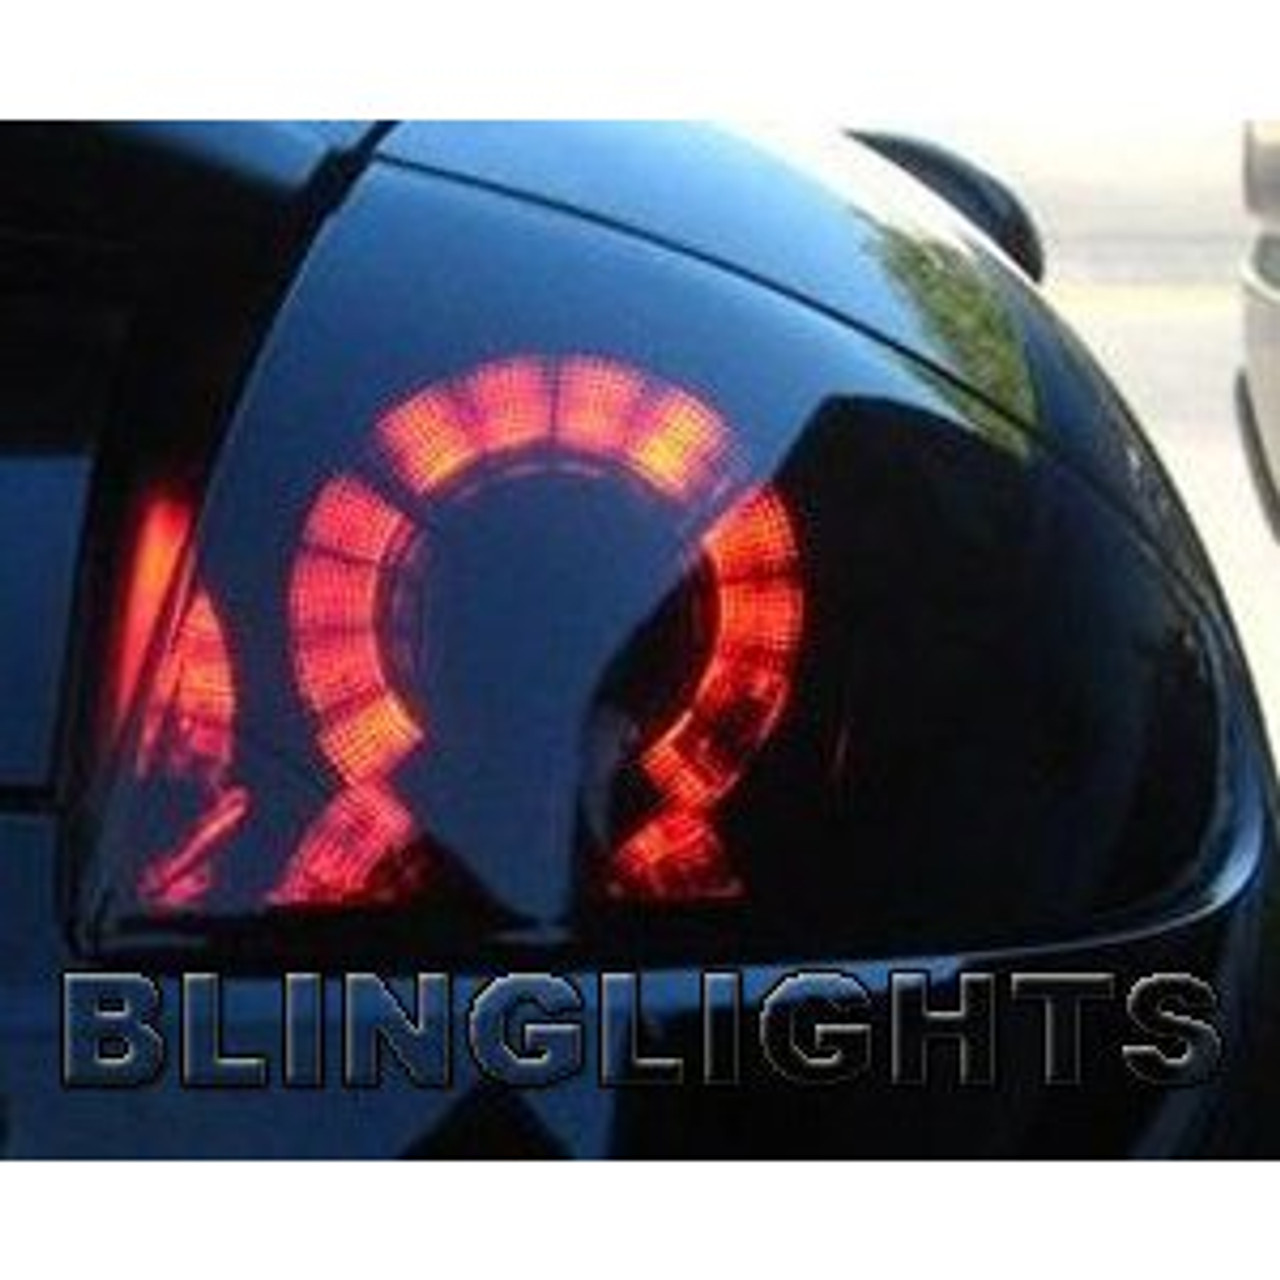 06-08 Mitsubishi Elclipse Smoked Tinted Tail Light Lamps Overlays Film Protection Kit